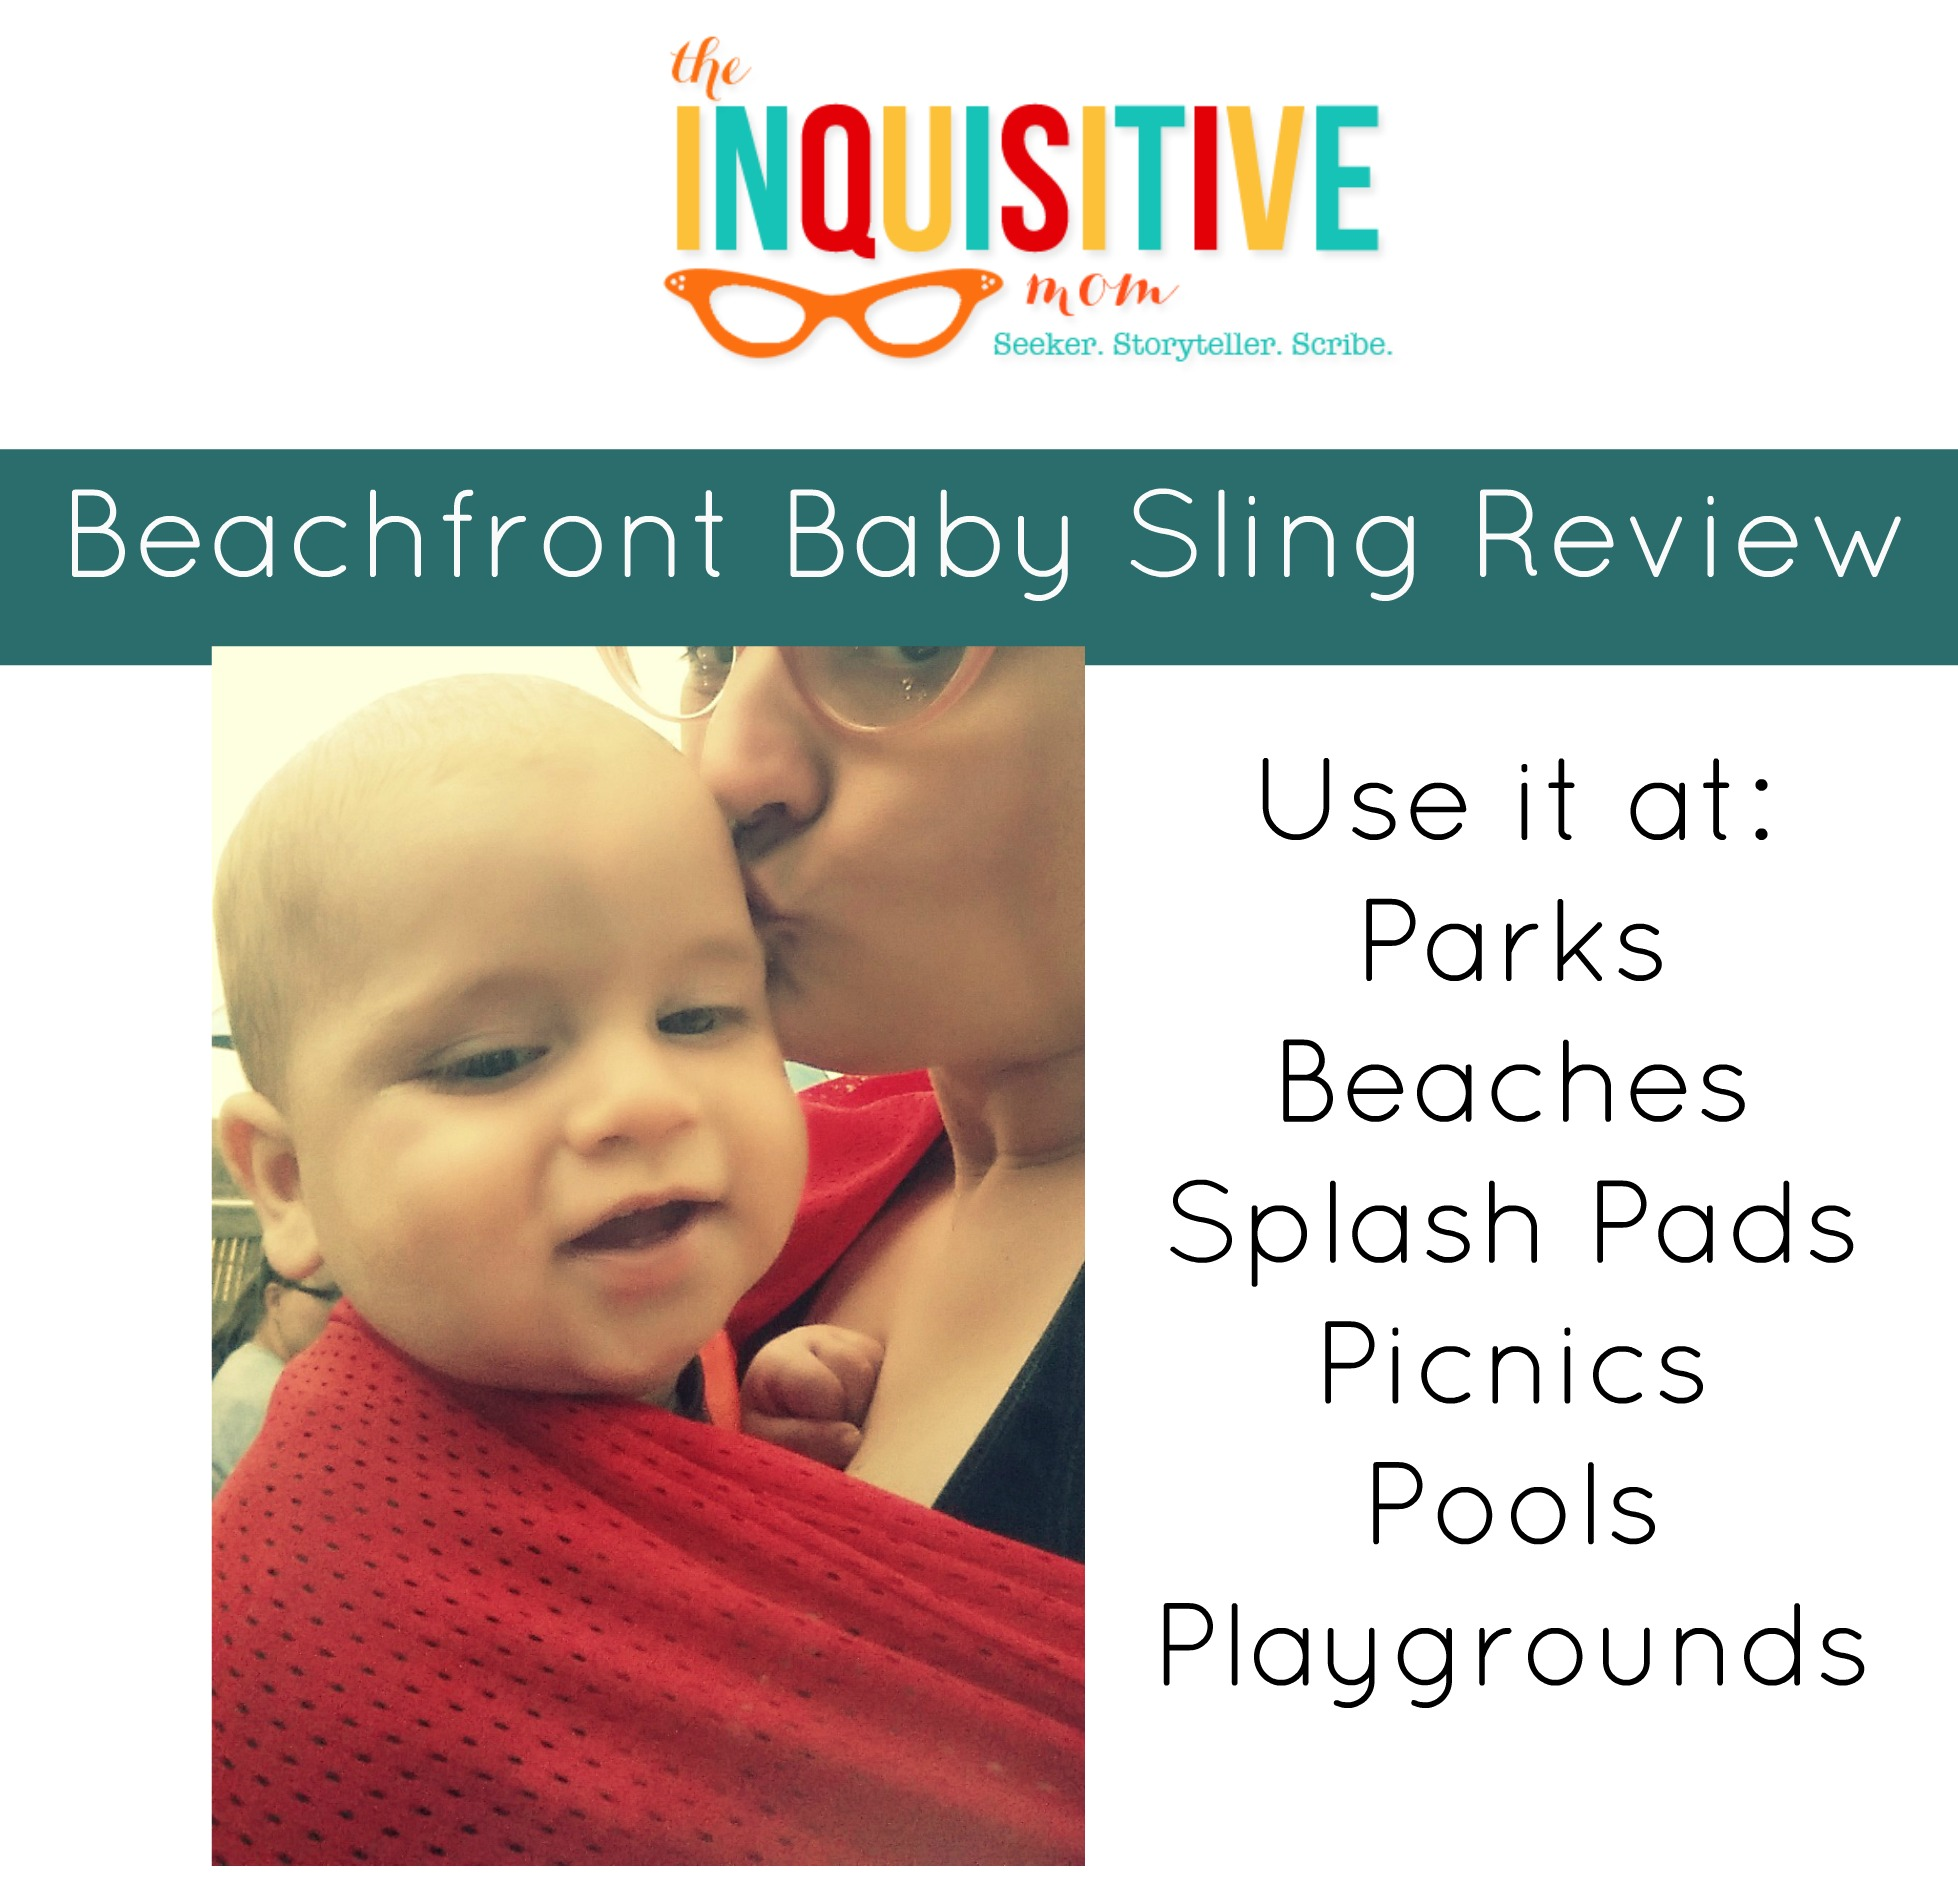 Beachfront Baby Sling for Summer The Inquisitive Mom